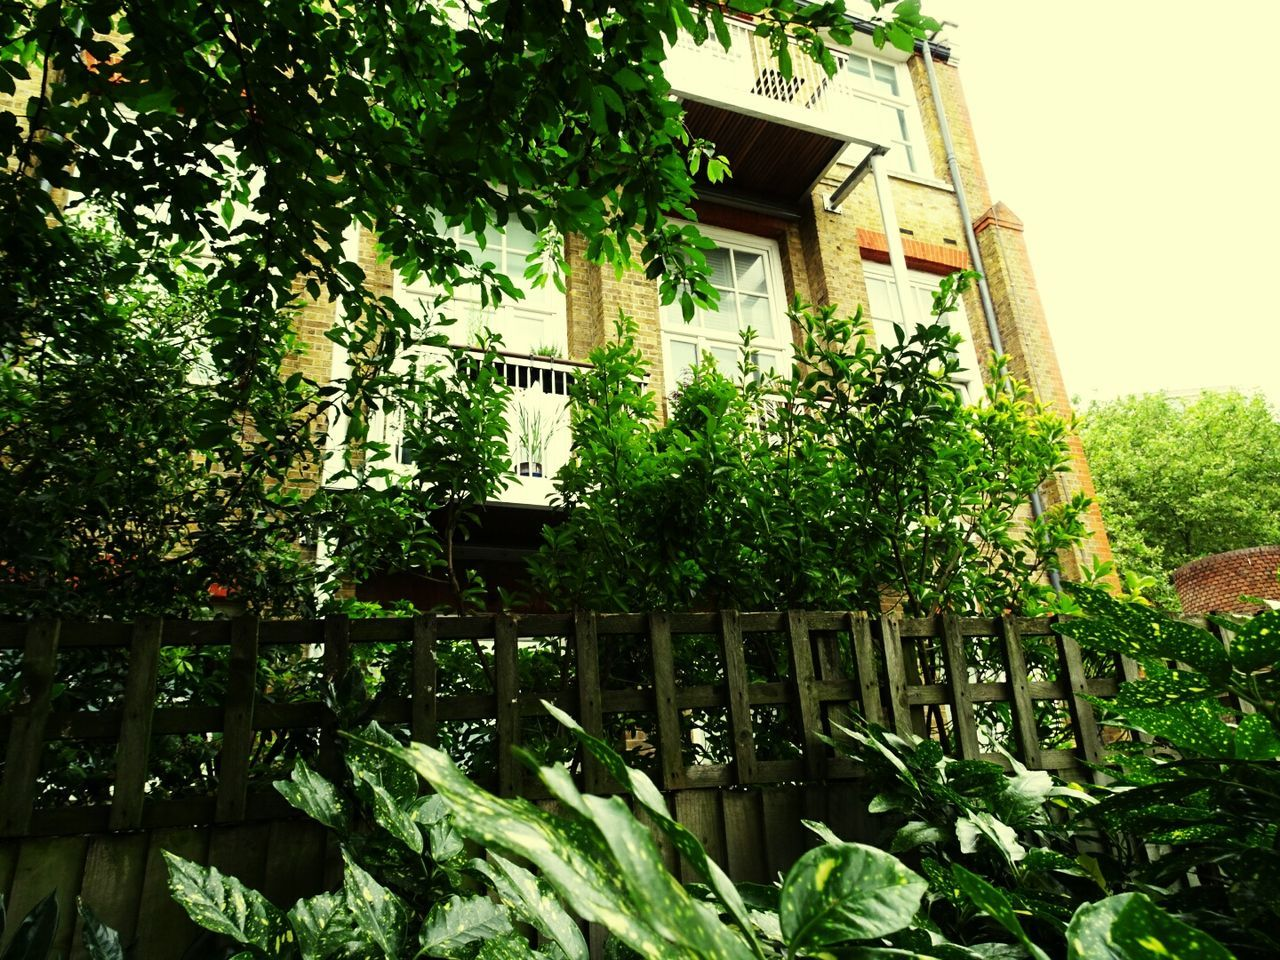 growth, low angle view, no people, plant, tree, architecture, green color, built structure, building exterior, day, outdoors, leaf, nature